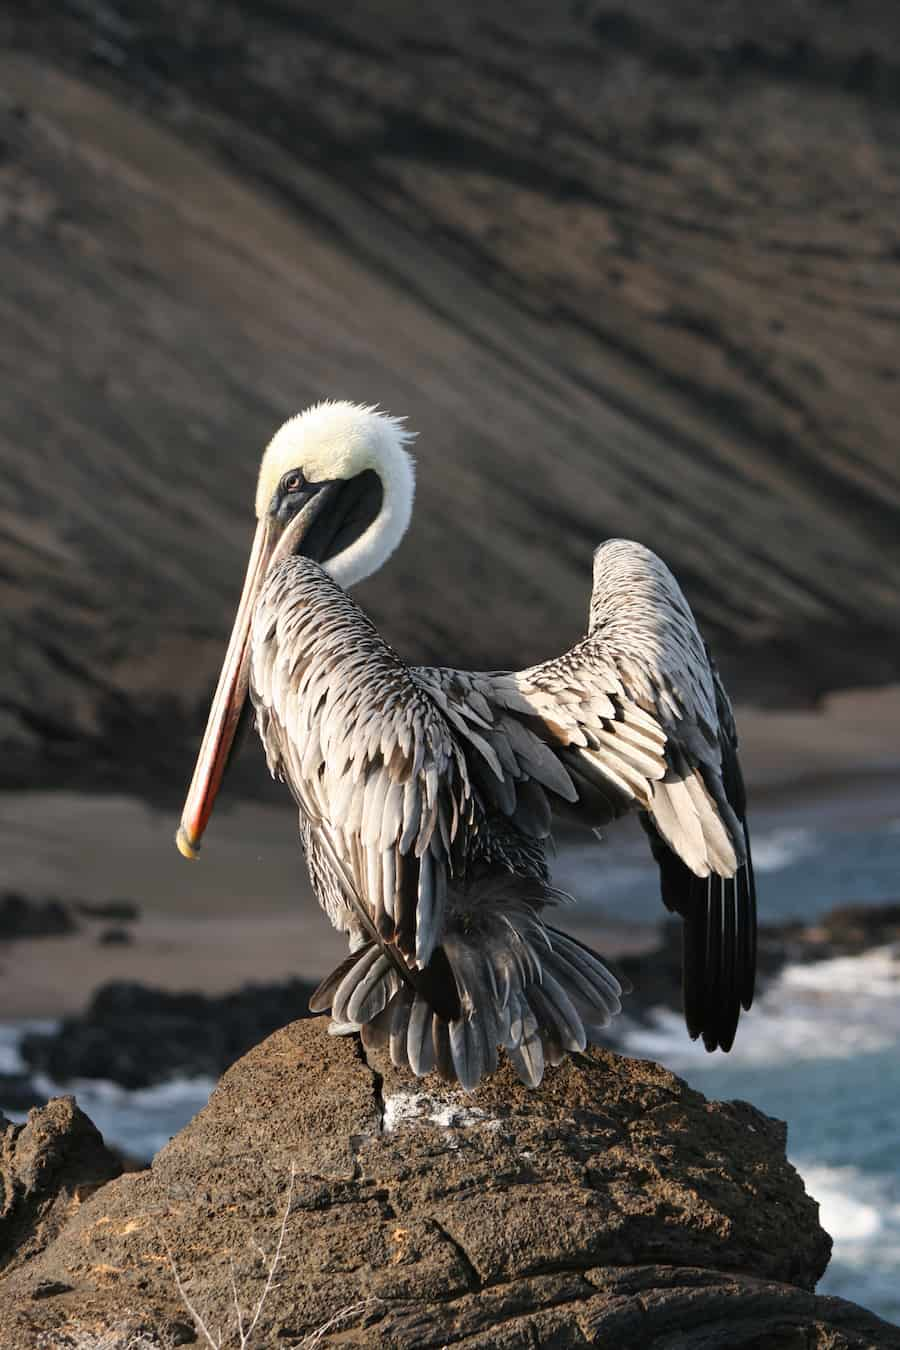 Pelican in the Galapagos Islands - by Mr Travel Lab